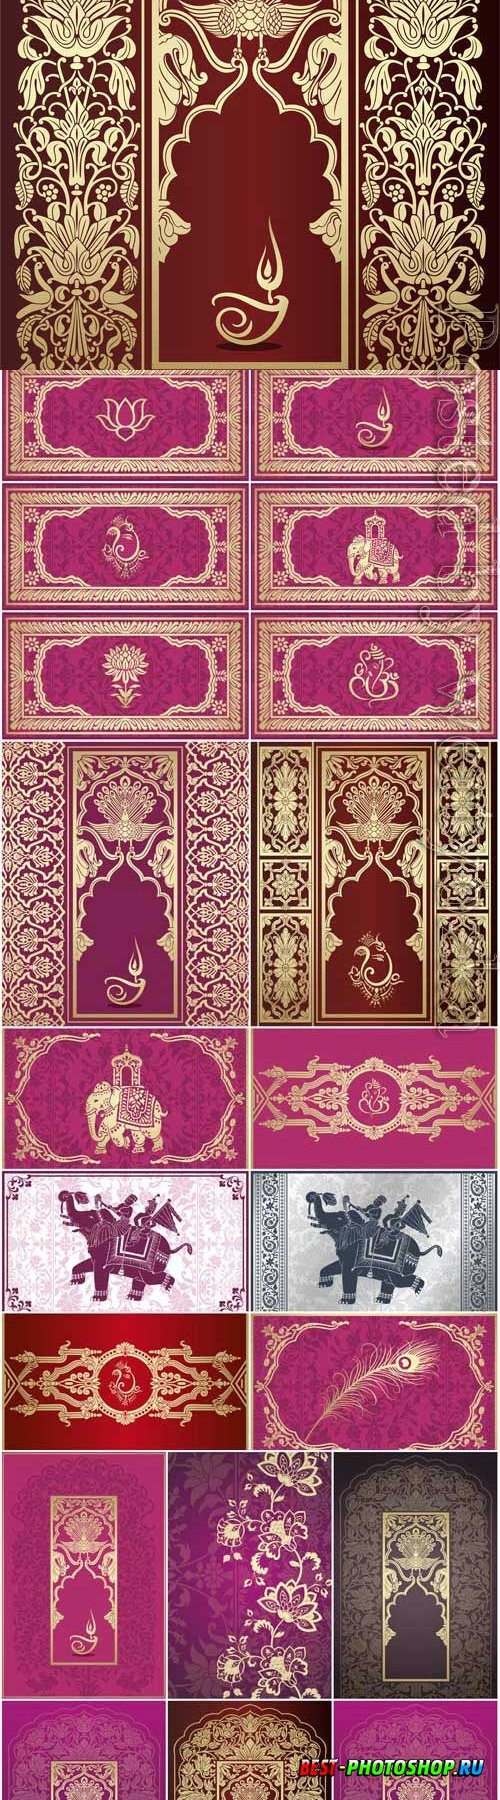 Gold Indian patterns in vector